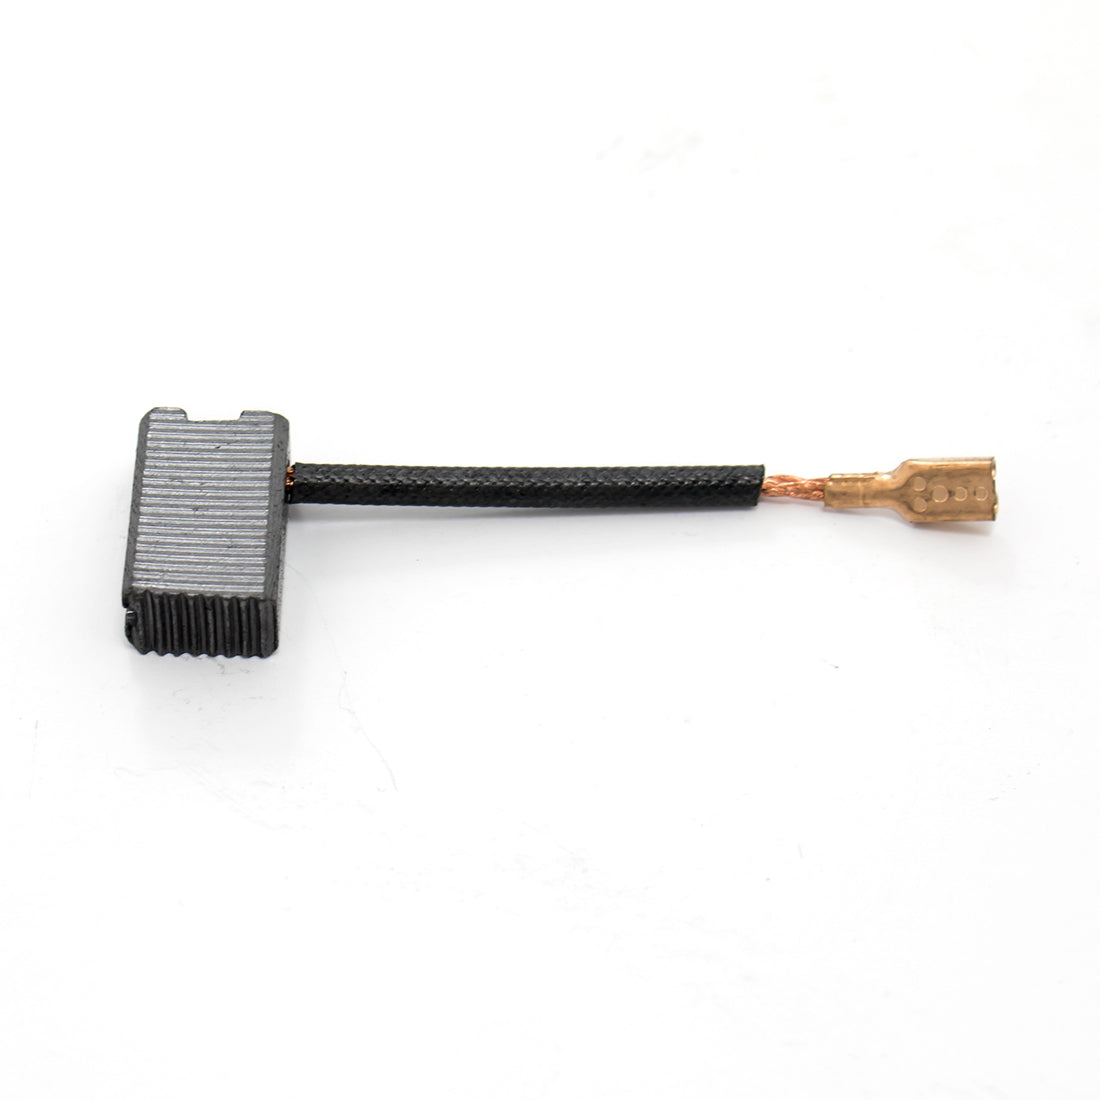 [MBA-047-120] Carbon brush - Pair 120V - (For Polisher)